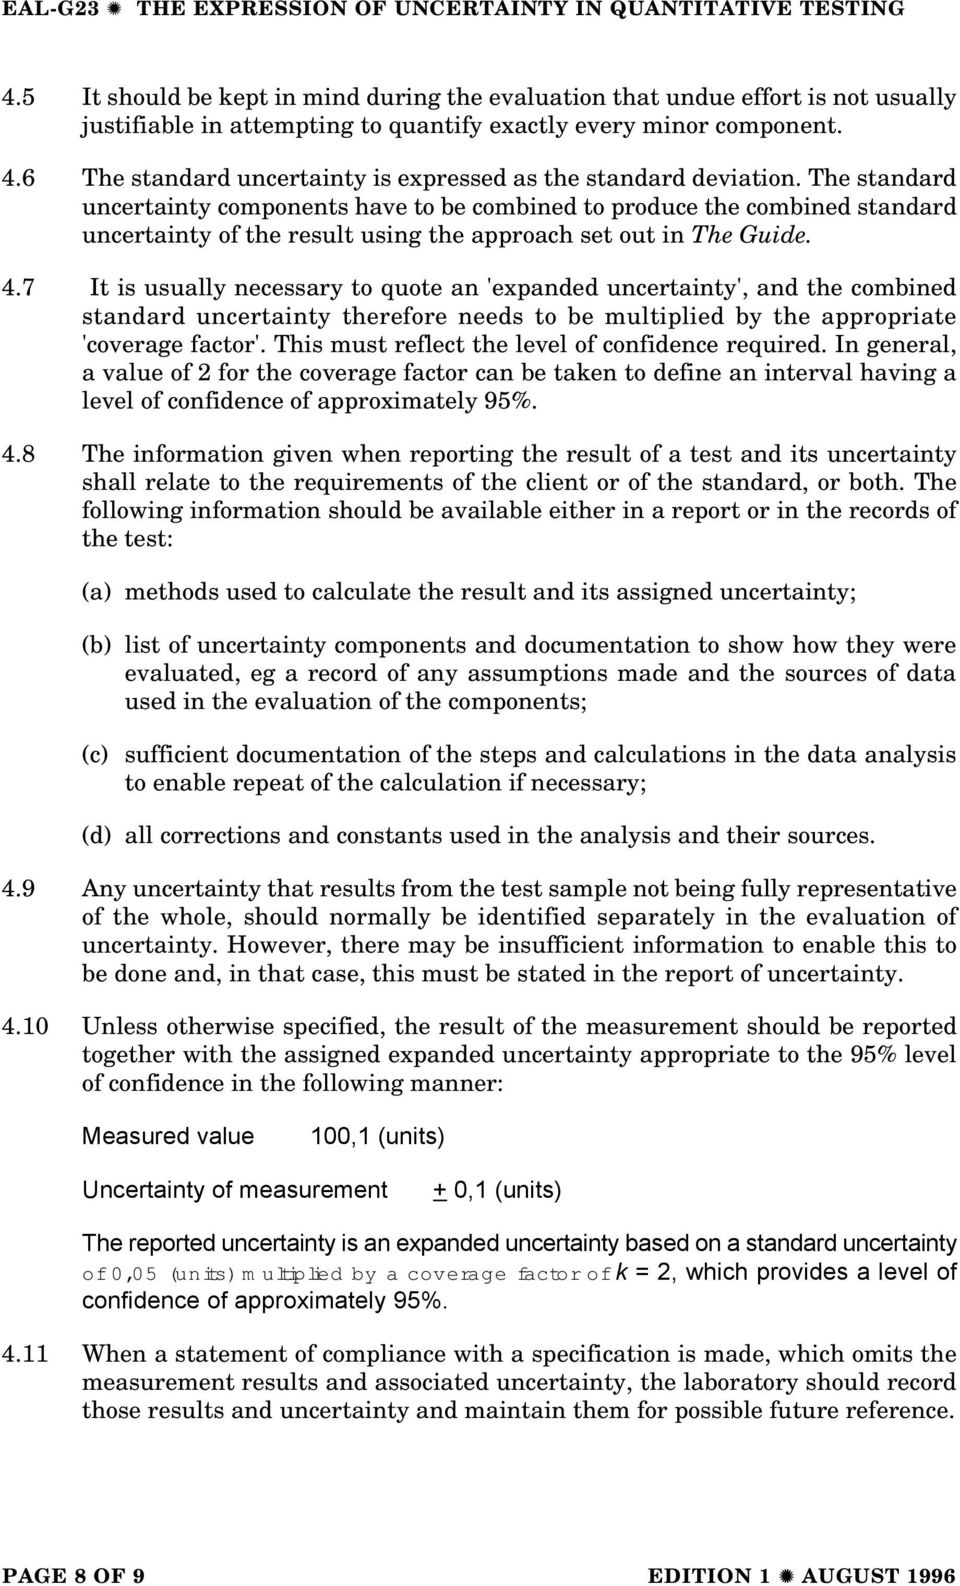 The standard uncertainty components have to be combined to produce the combined standard uncertainty of the result using the approach set out in The Guide. 4.